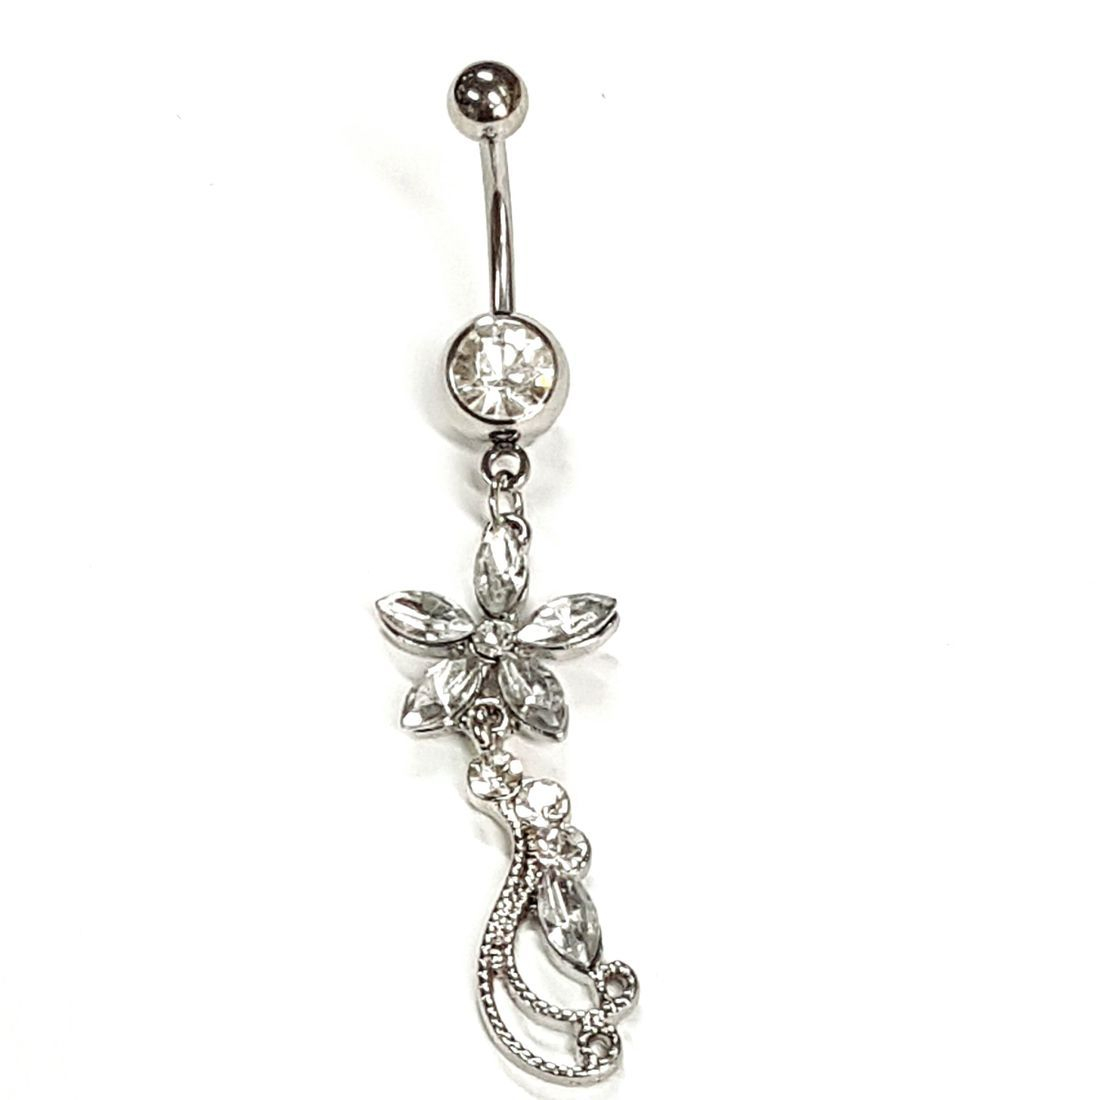 1.6mm x 10mm Clear Crystal Flower Titanium Navel Bar   available at Kazbah online and our Leicester City Centre Shop